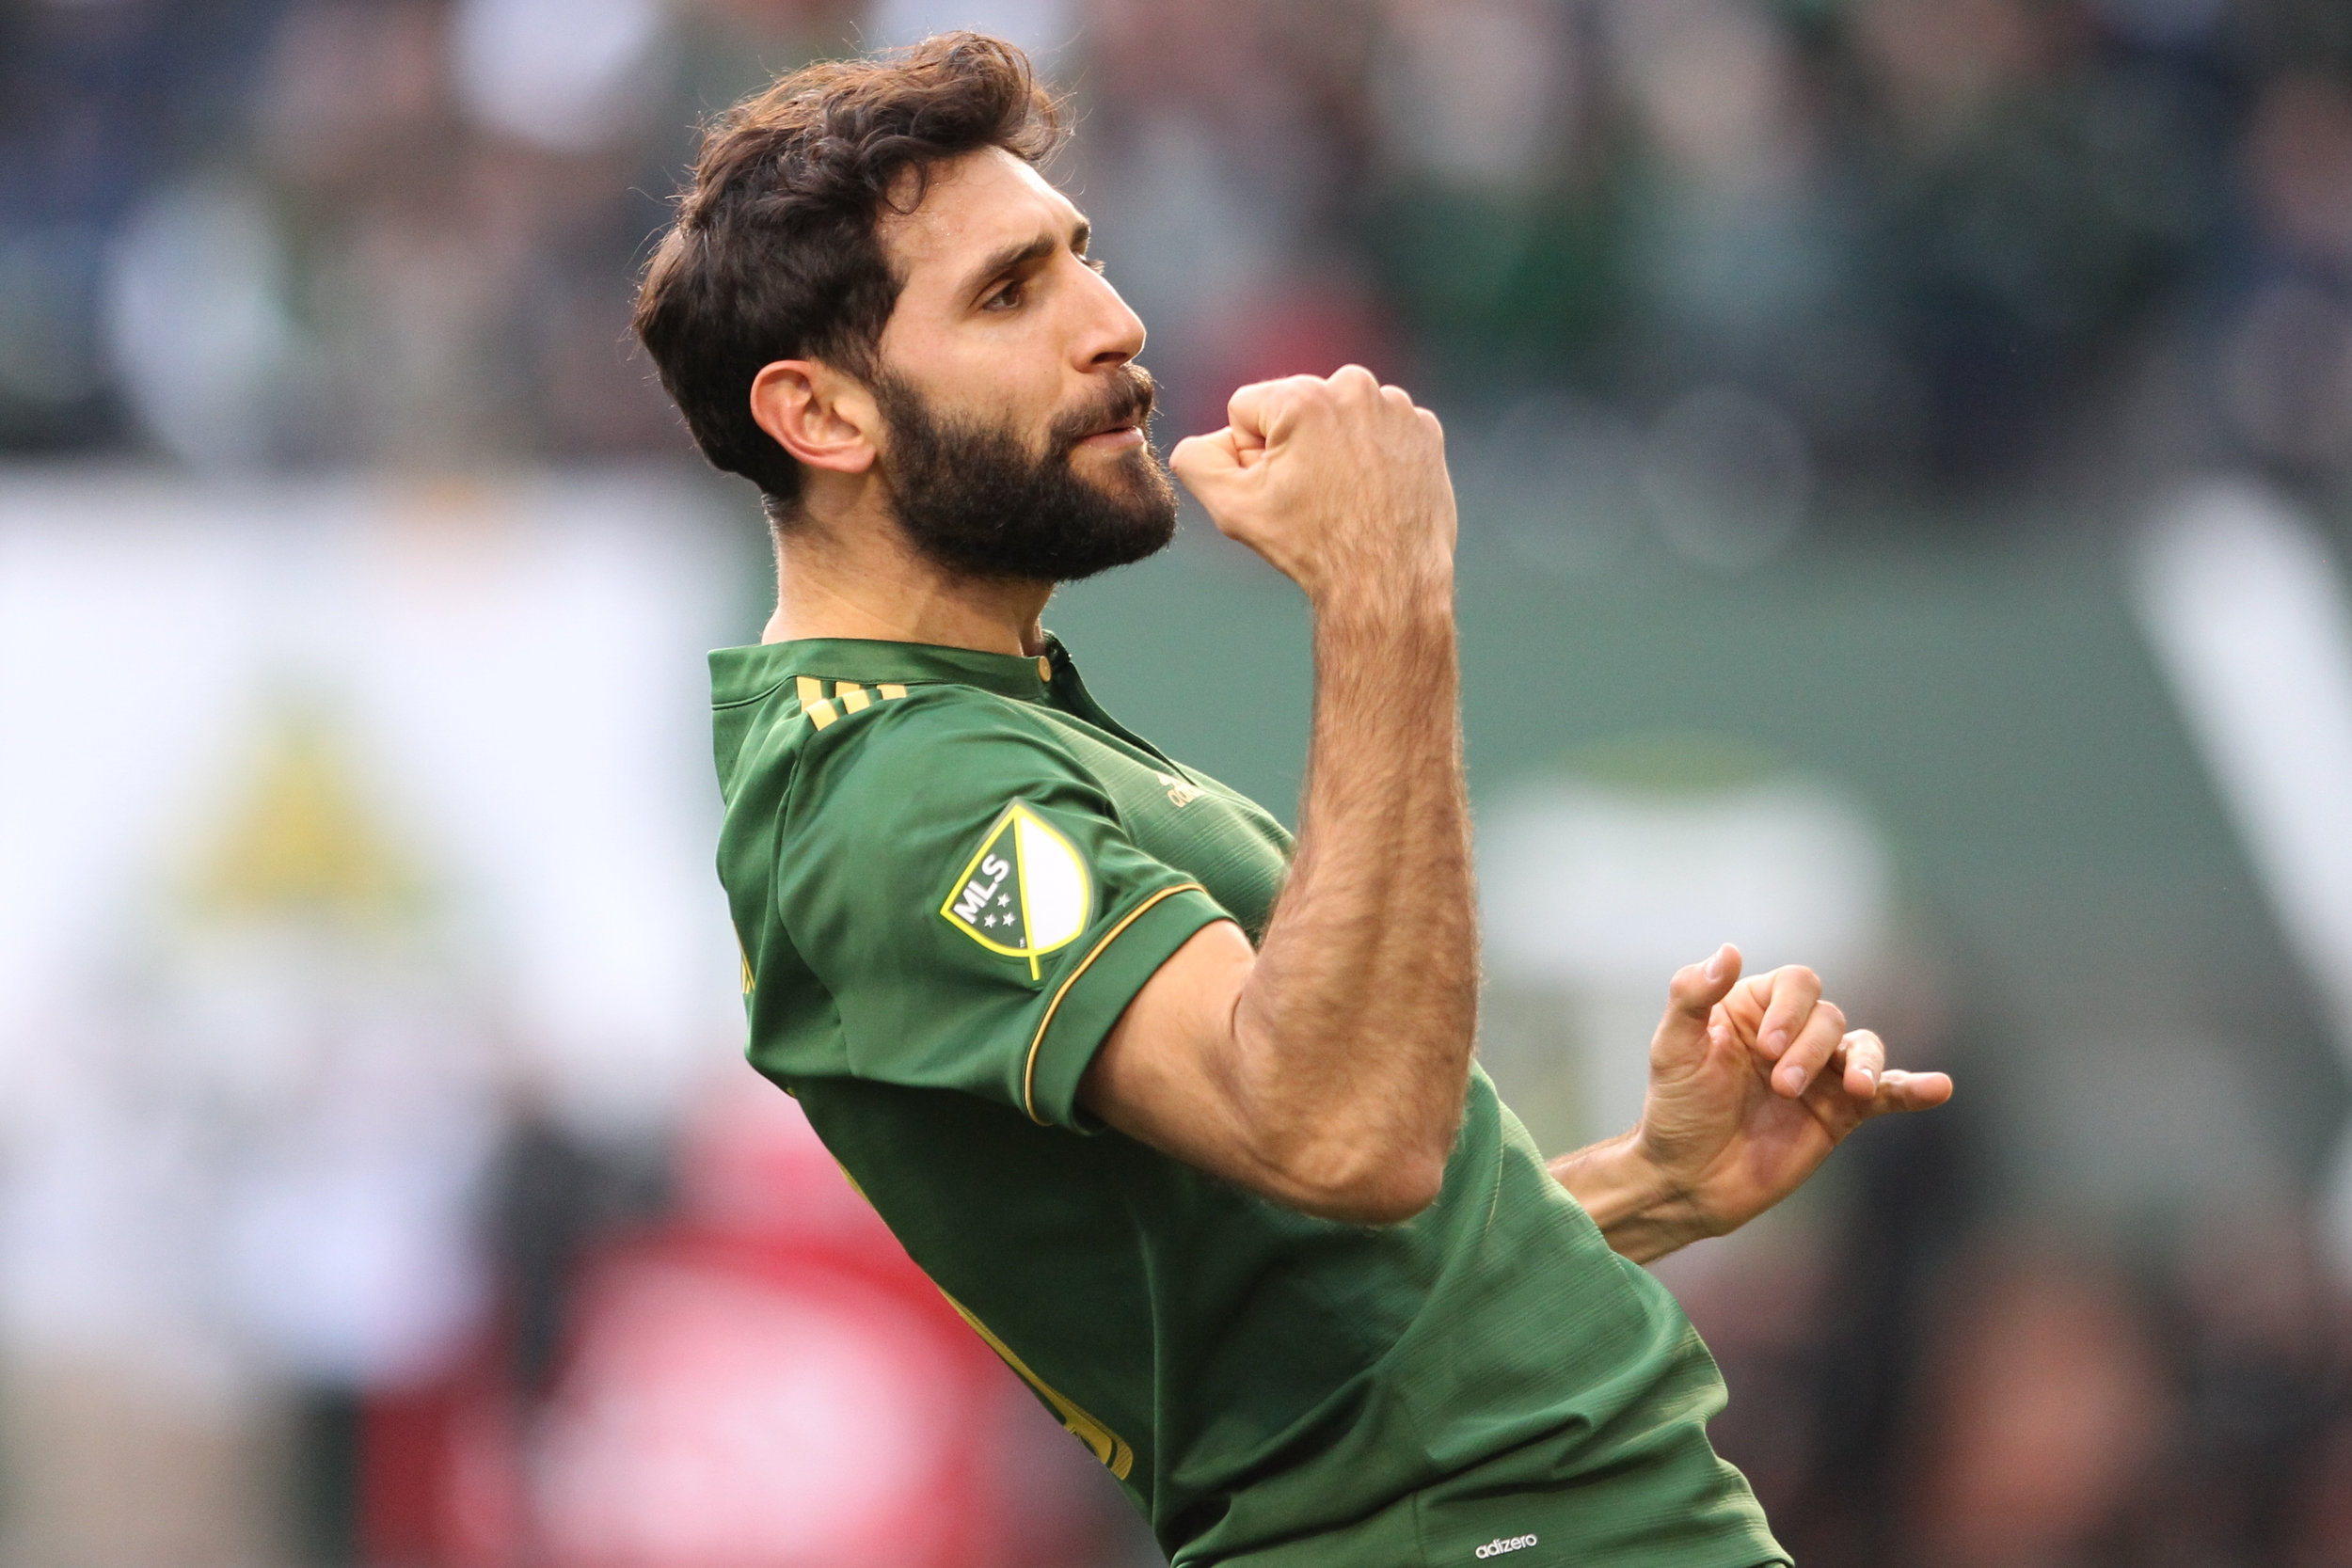 Portland Timbers' Diego Valeri celebrates after scoring a goal in the first half against the New England Revolution during an MLS soccer match Sunday, April 2, 2017, at Providence Park in Portland, Ore. (Pete Christopher/The Oregonian via AP)